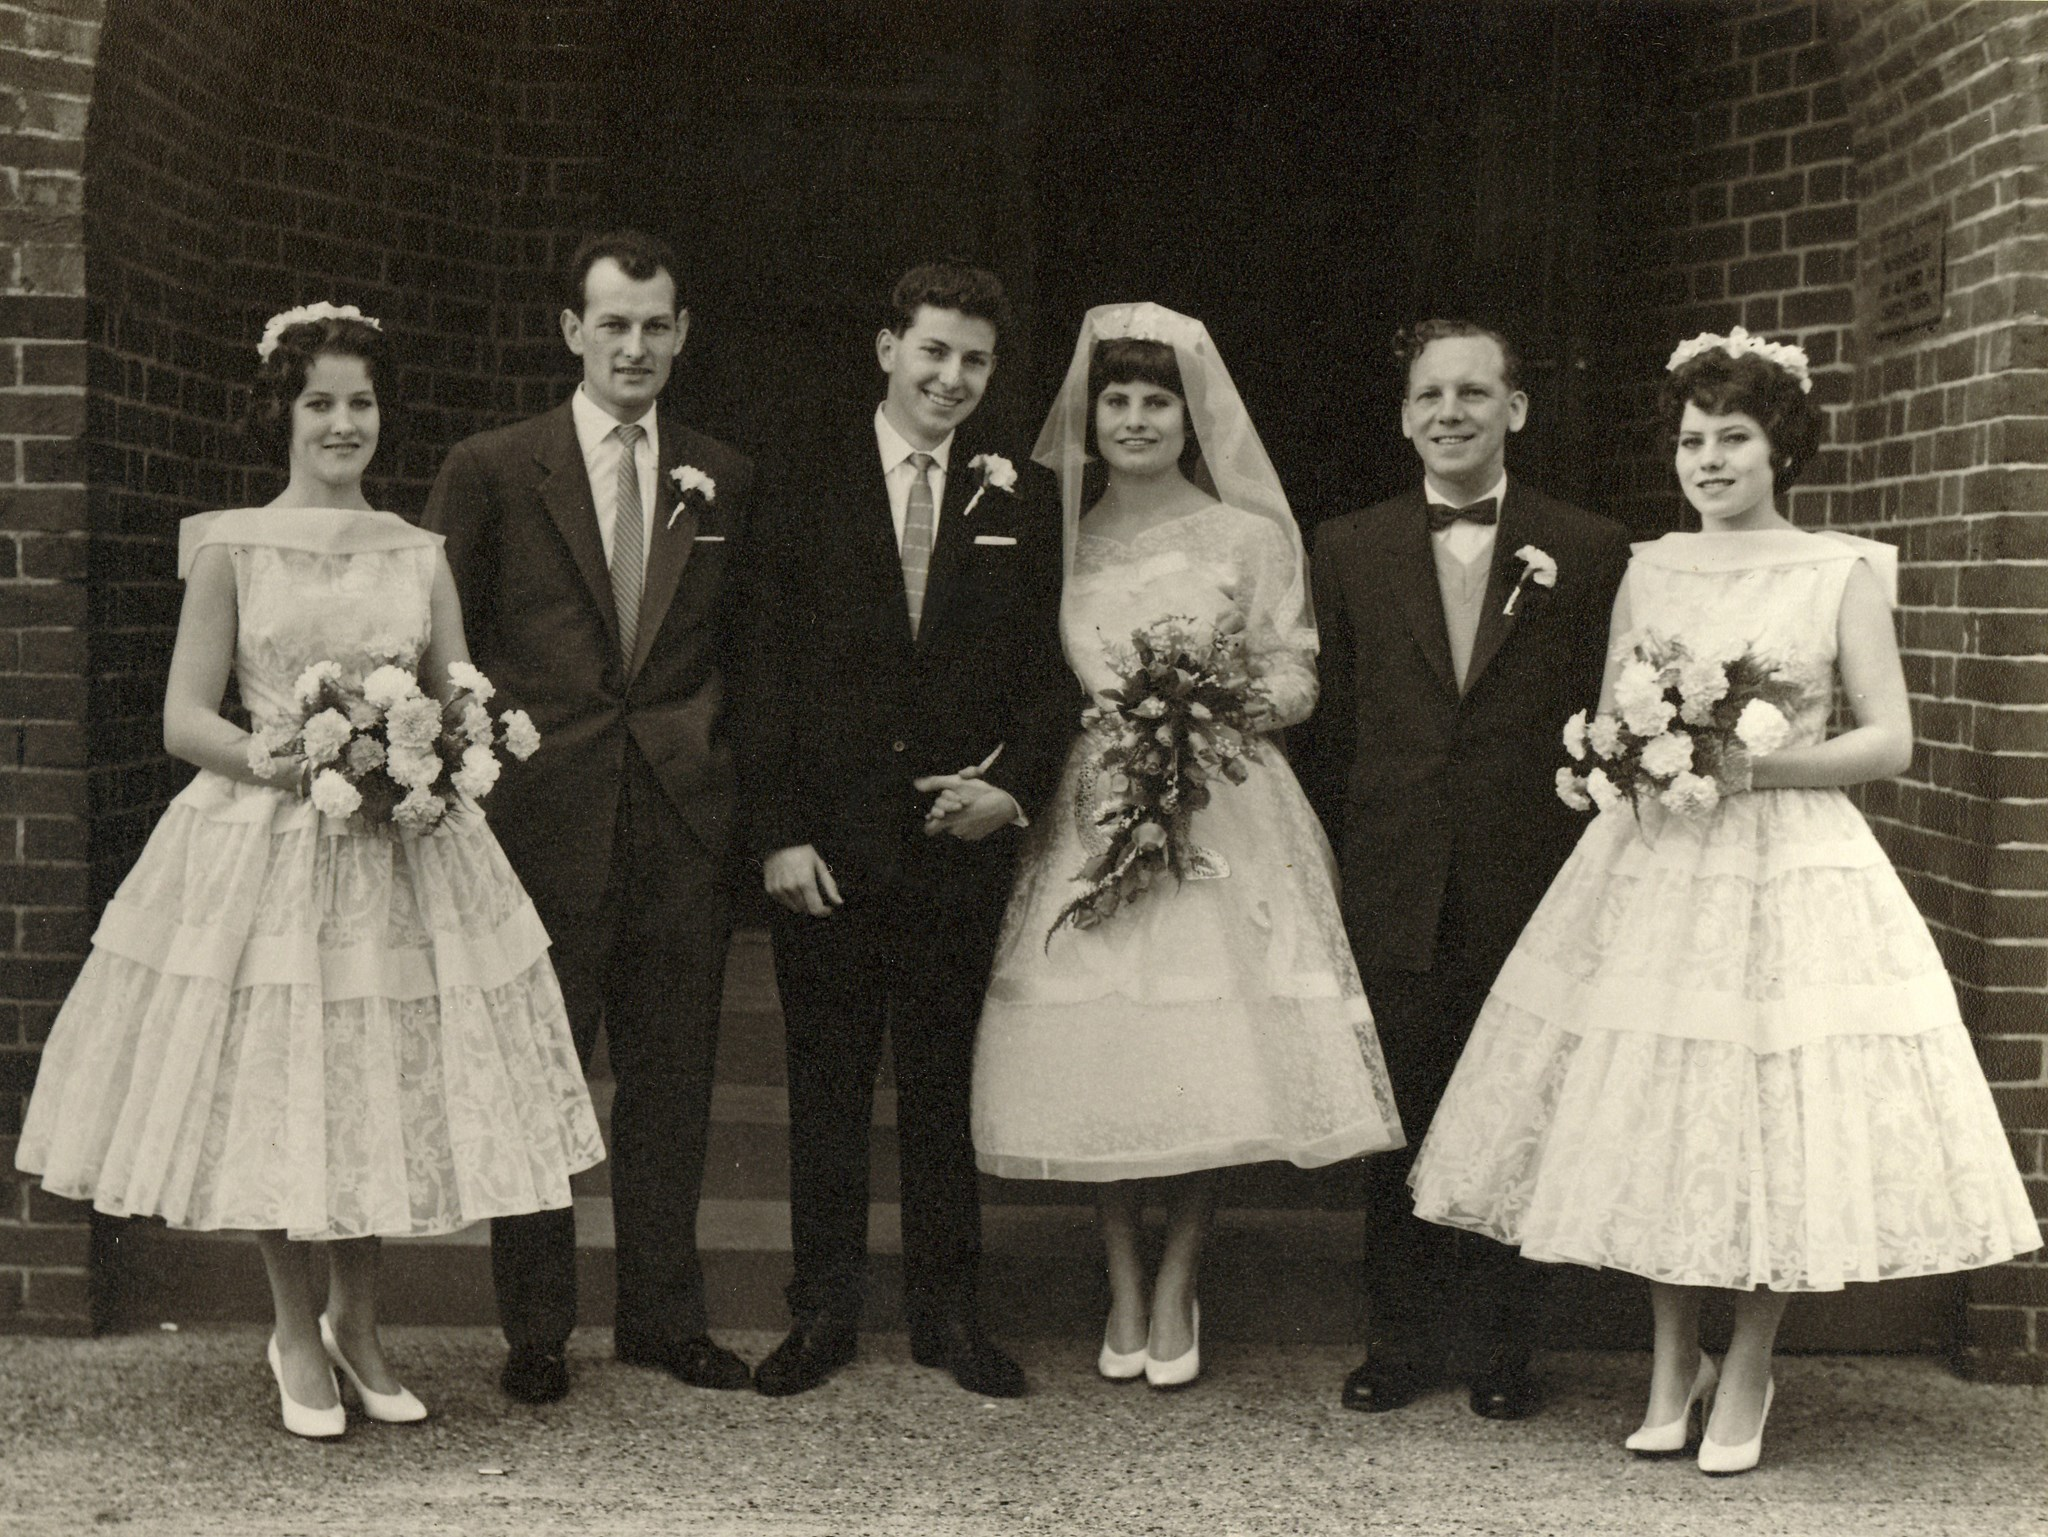 Diane, Peter, Ray, Irene, Tom and Jean